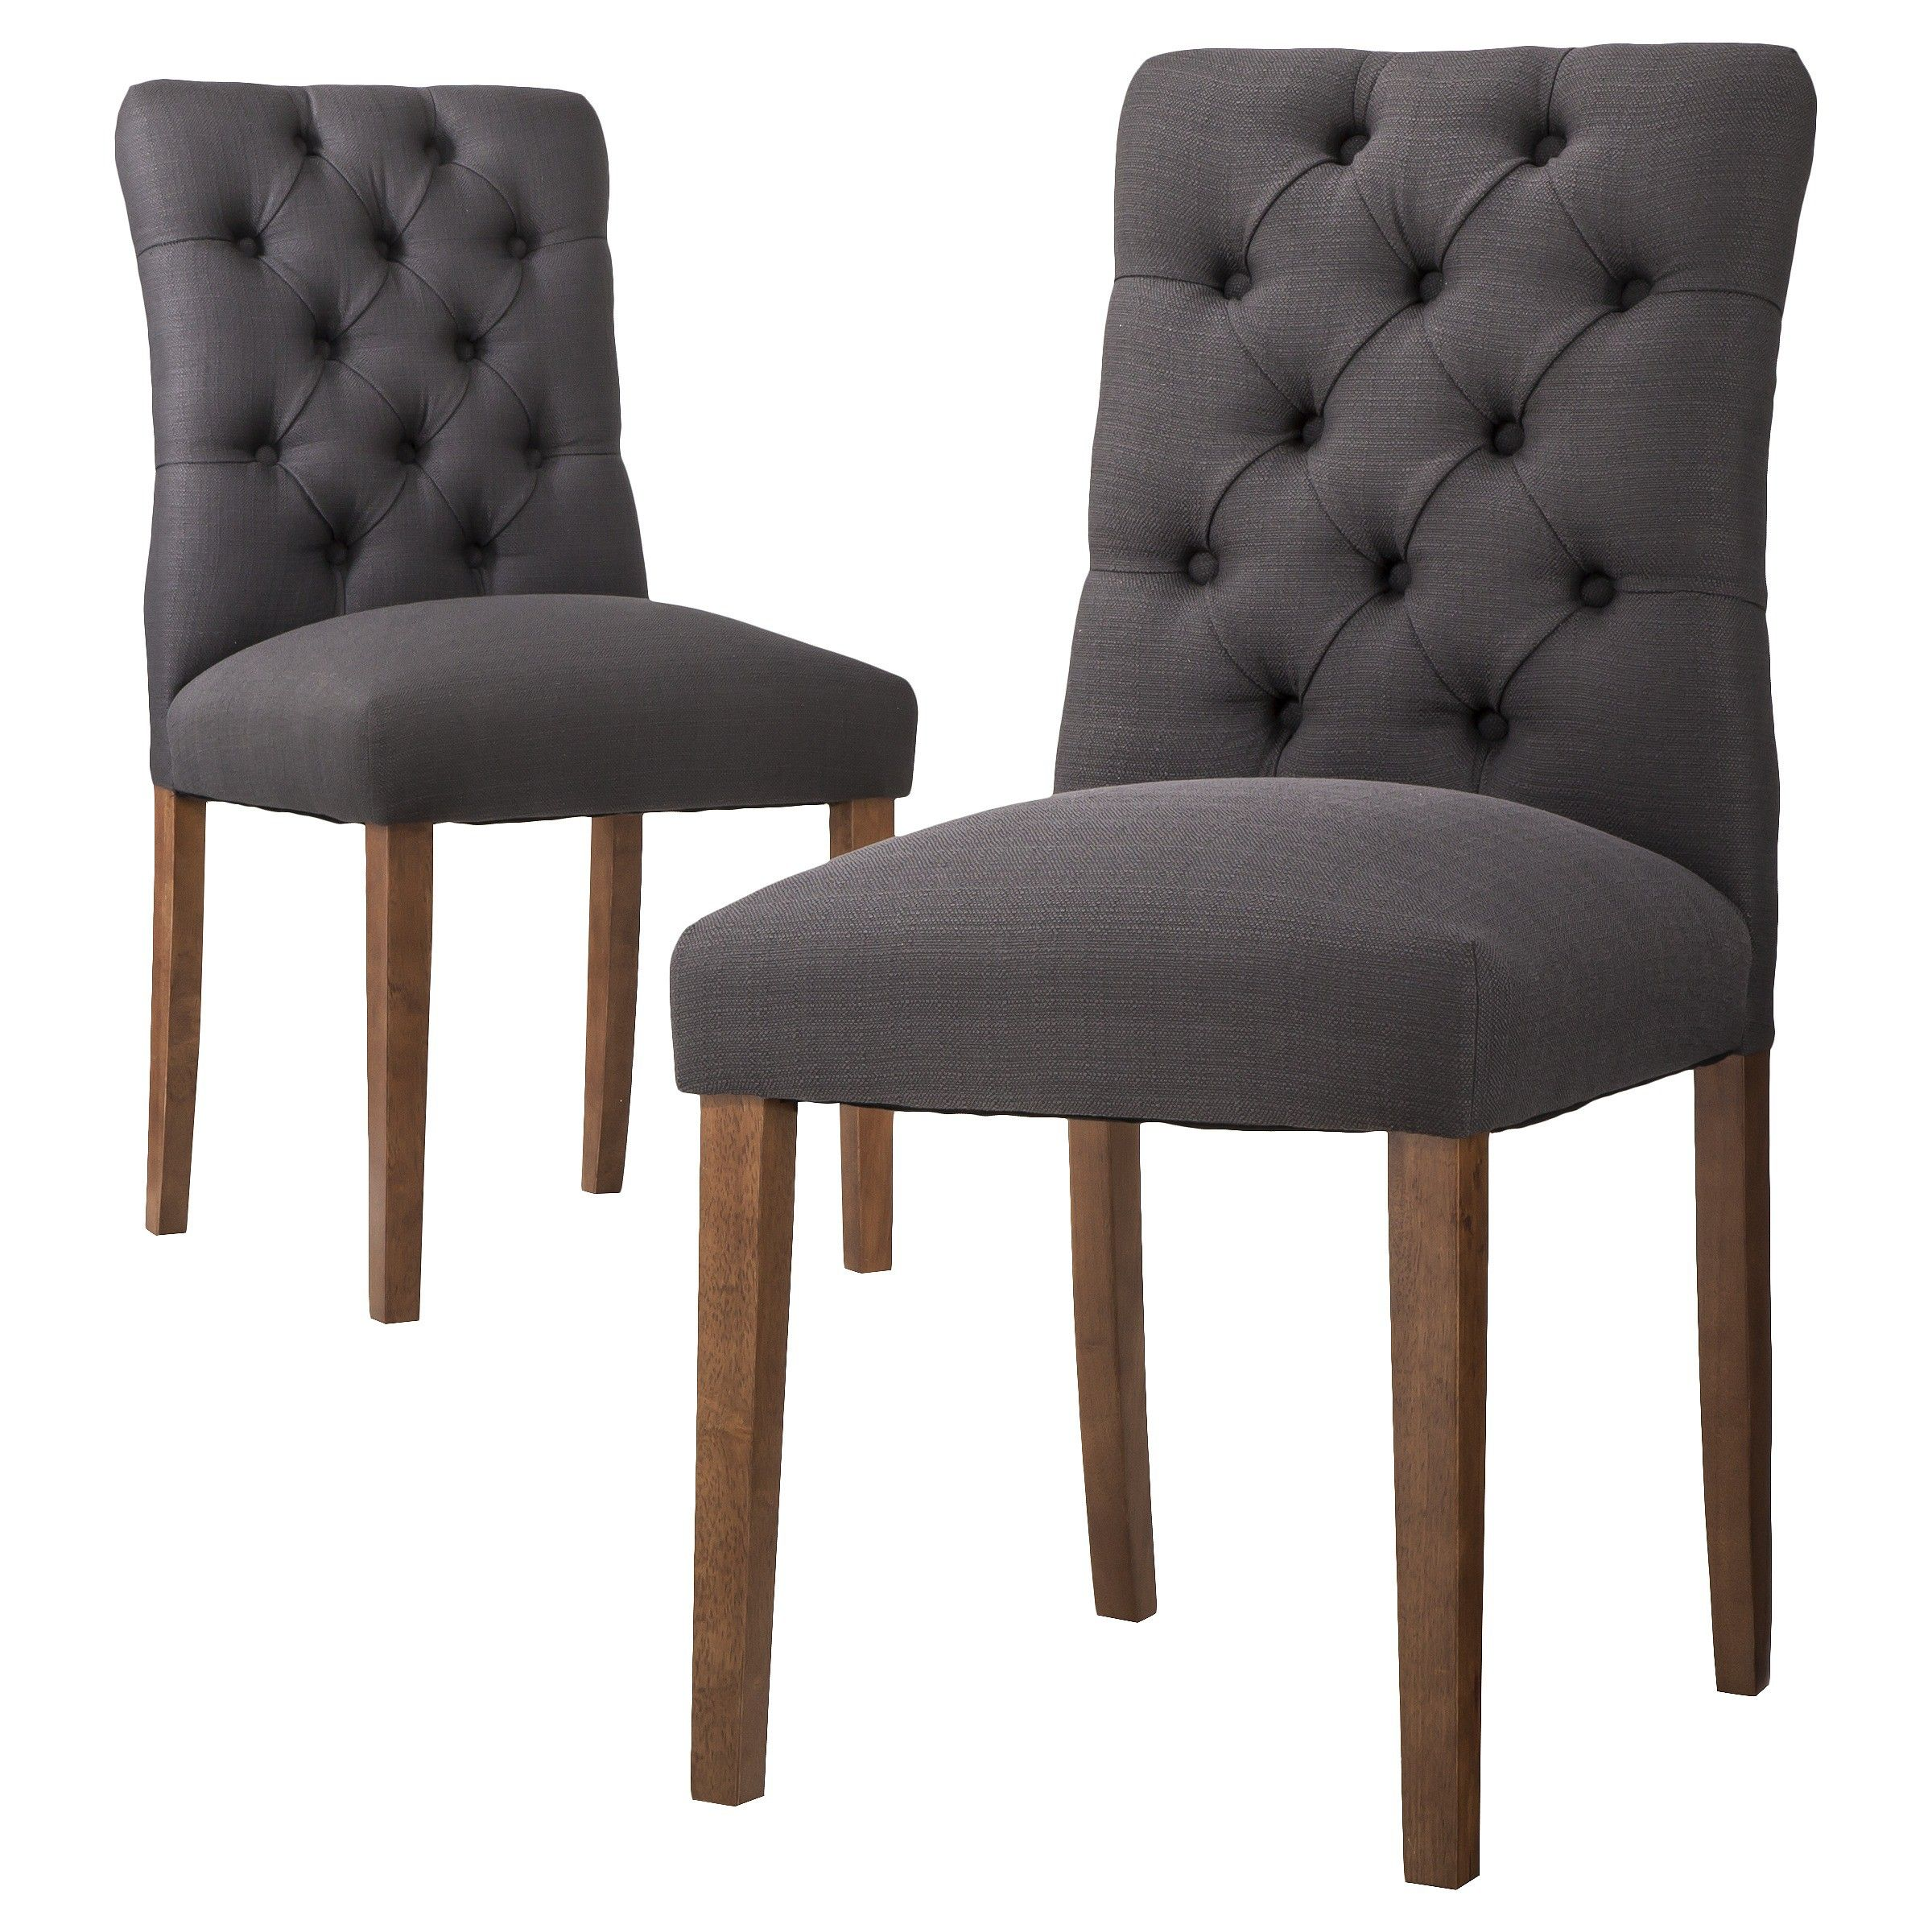 Phenomenal 2 Pc Brookline Tufted Dining Chair Teal Threshold Andrewgaddart Wooden Chair Designs For Living Room Andrewgaddartcom